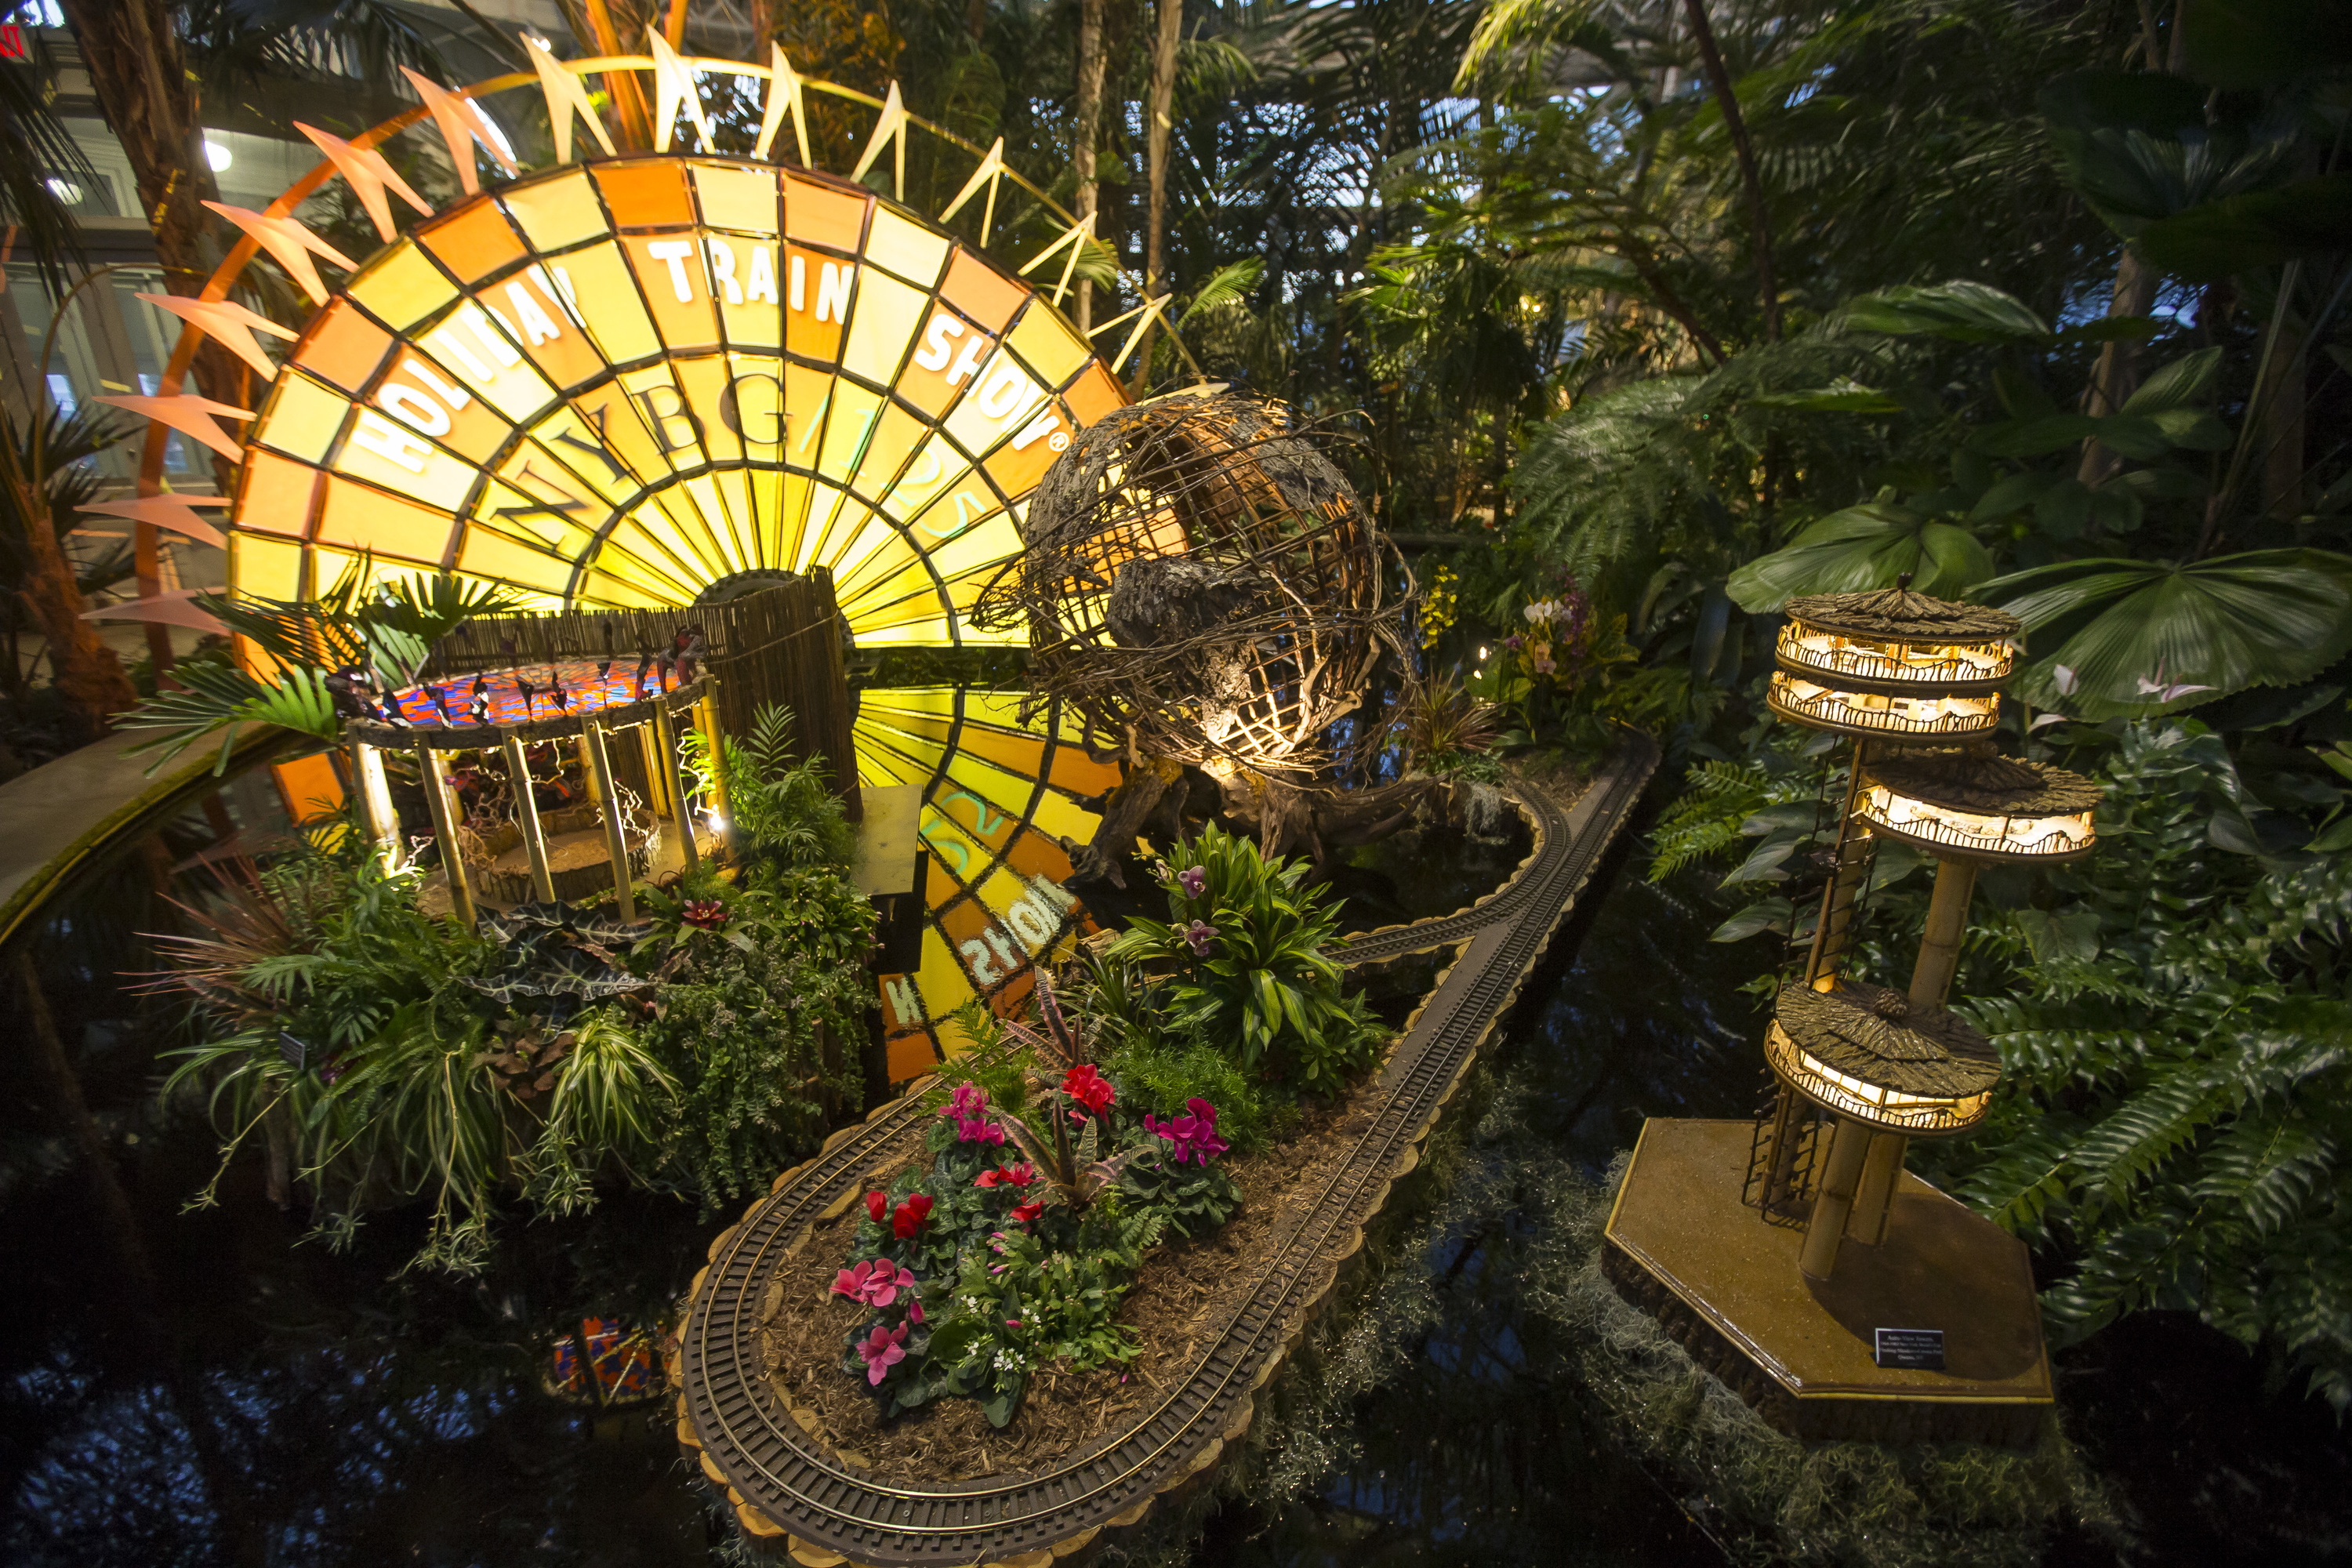 Photos of the New York Botanical Garden train show